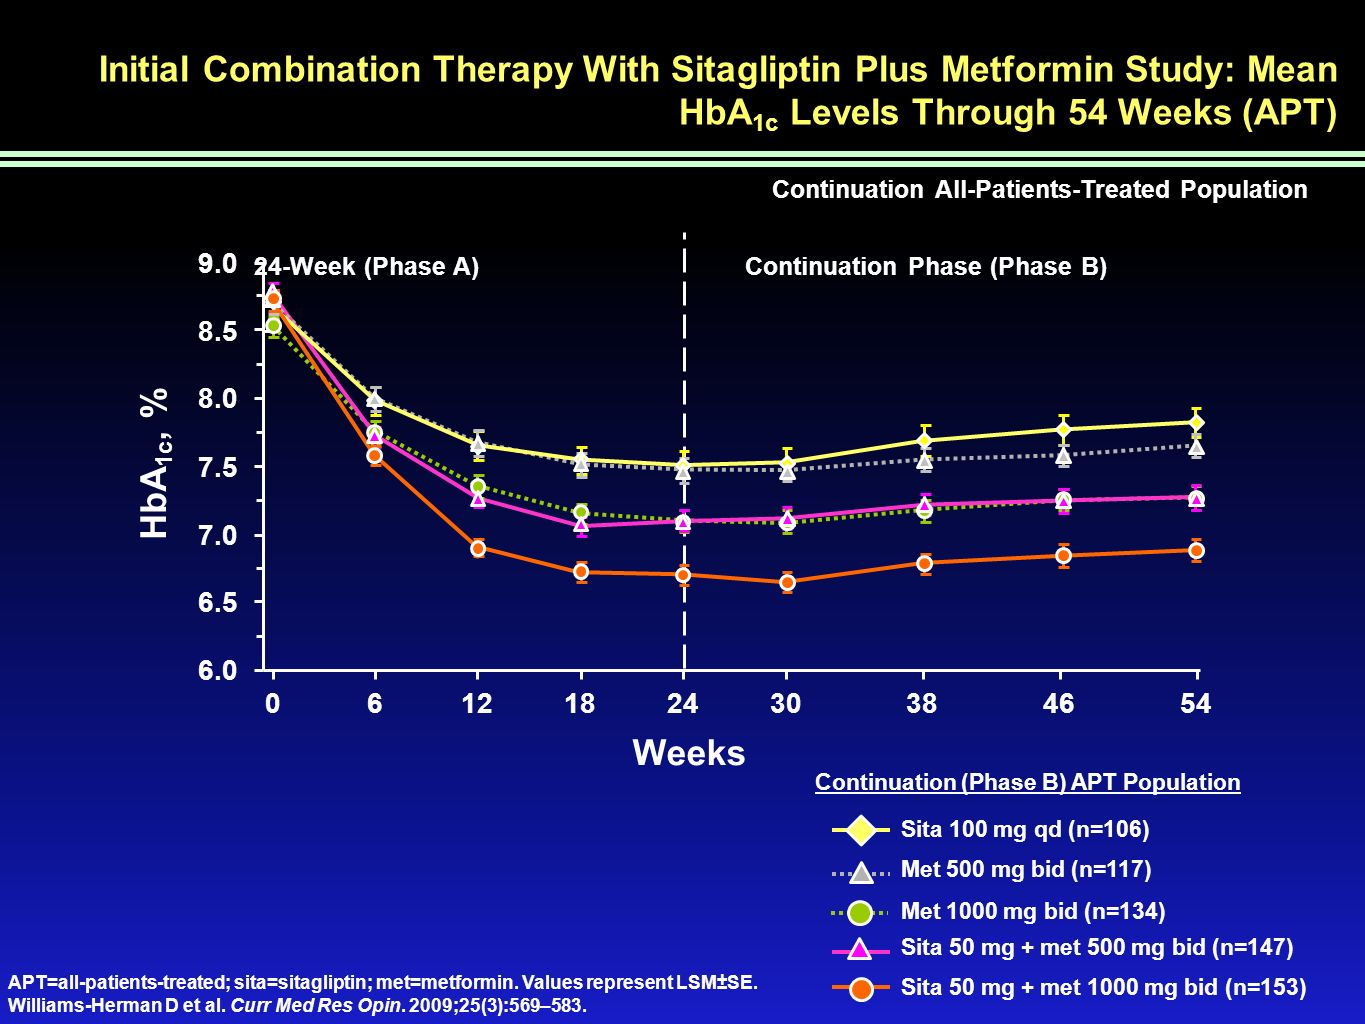 Initial Combination Therapy With Sitagliptin Plus Metformin Study: Mean HbA 1c Levels Through 54 Weeks (APT) Sita 50 mg + met 1000 mg bid (n=153) Met 1000 mg bid (n=134) Sita 100 mg qd (n=106) Sita 50 mg + met 500 mg bid (n=147) Met 500 mg bid (n=117) APT=all-patients-treated; sita=sitagliptin; met=metformin.